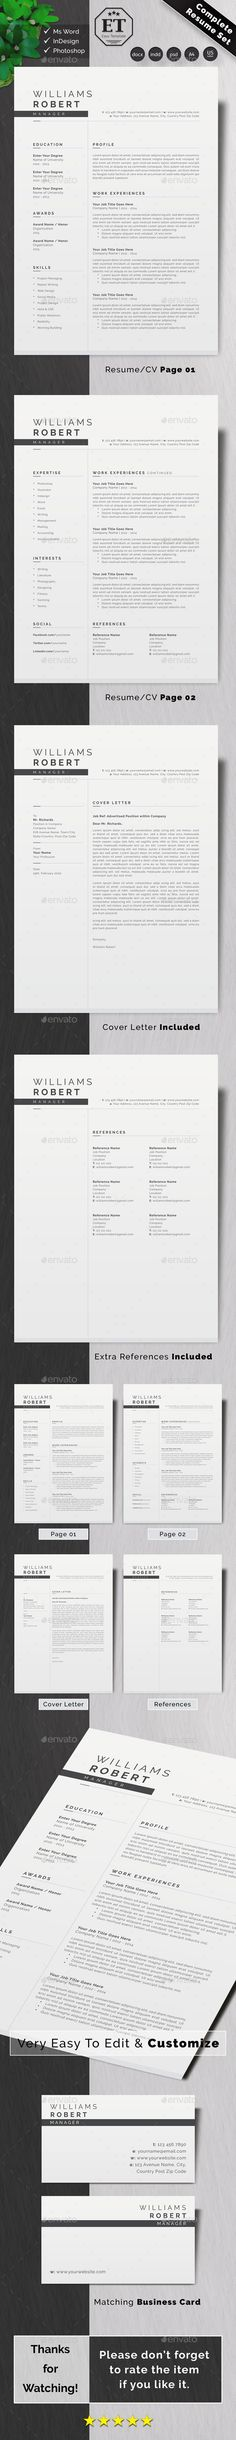 Resume Business Card Psd, Business Card Design, A4 Paper, Paper Size, References Page, Cv Design, Resume, Templates, Lettering